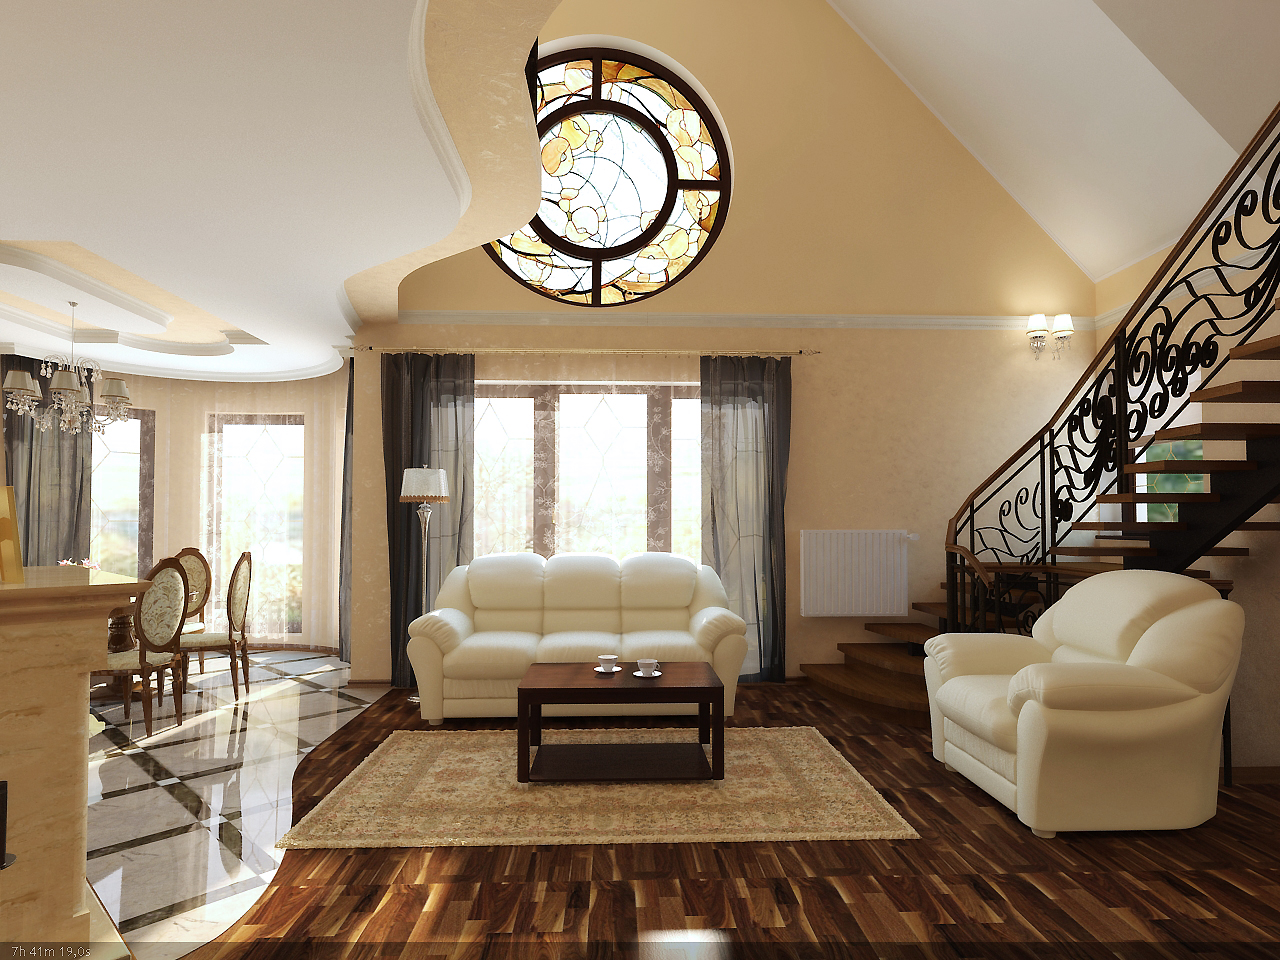 Home Interior Decorator classic interior design